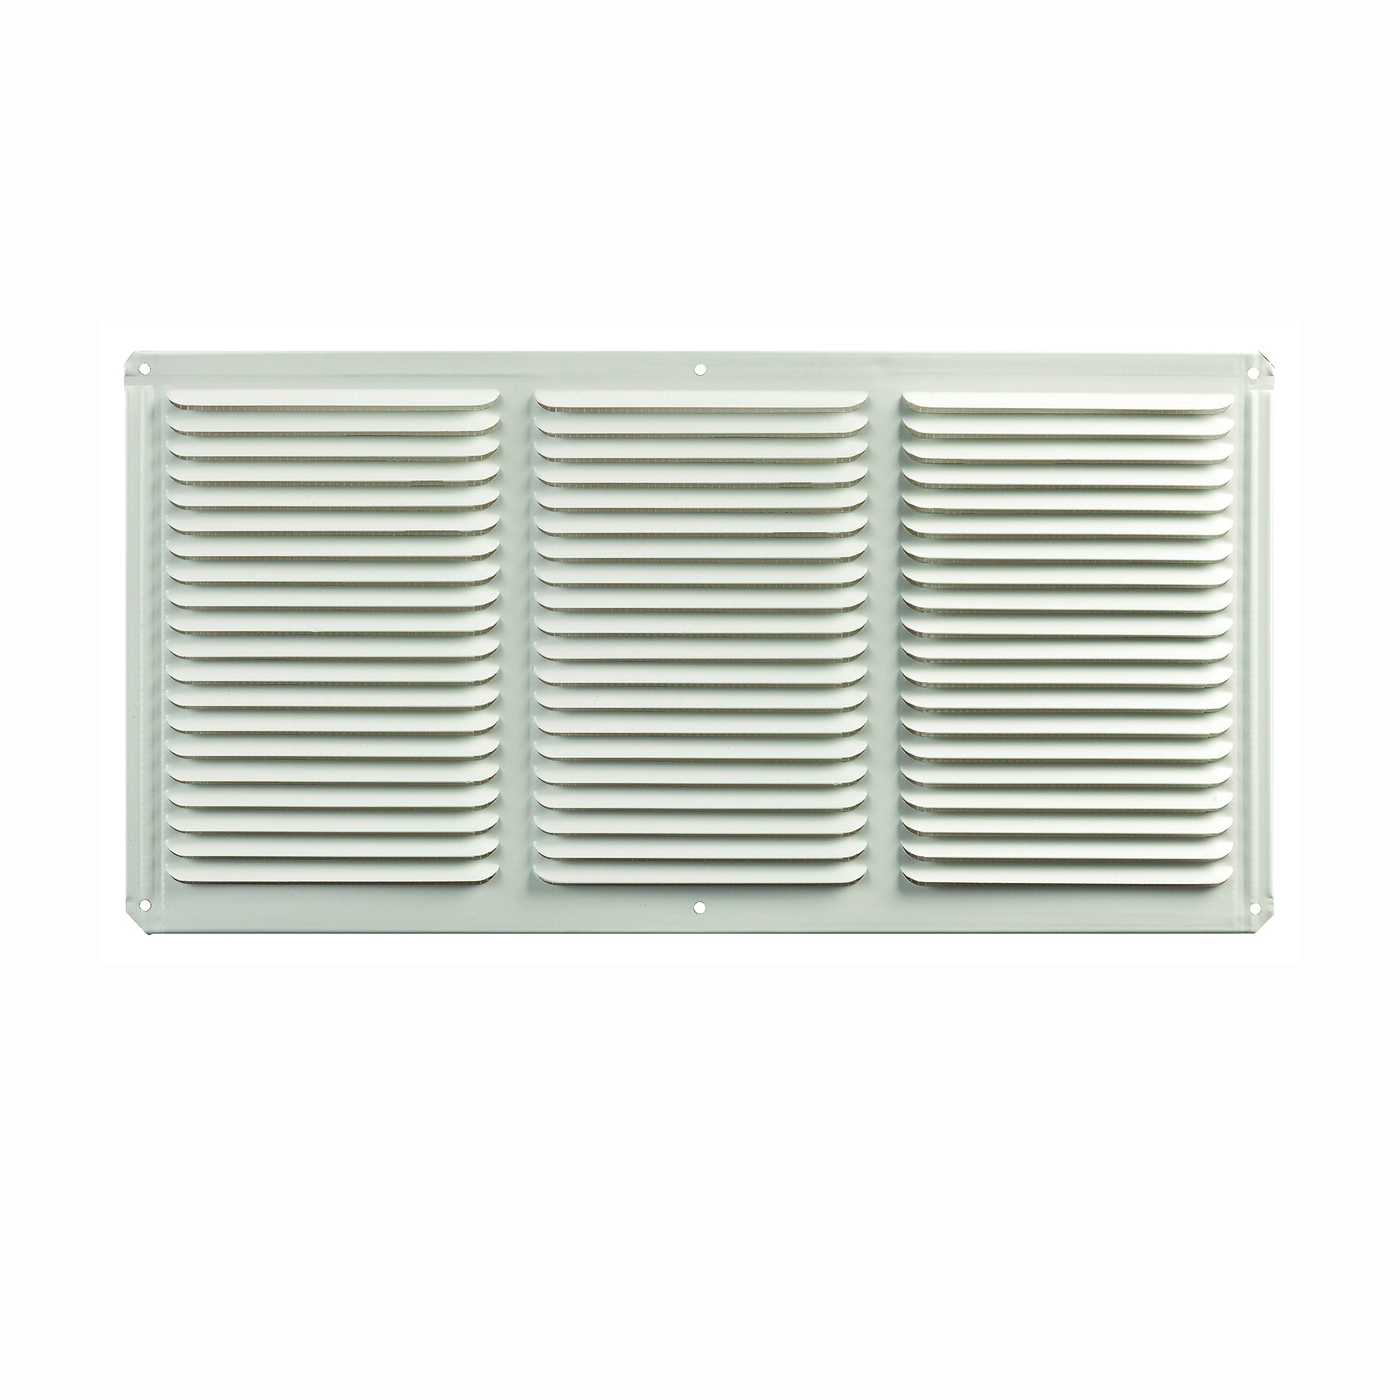 Picture of Master Flow EAC16X8W Undereave Vent, 8 in L, 16 in W, 65 sq-ft Net Free Ventilating Area, Aluminum, White